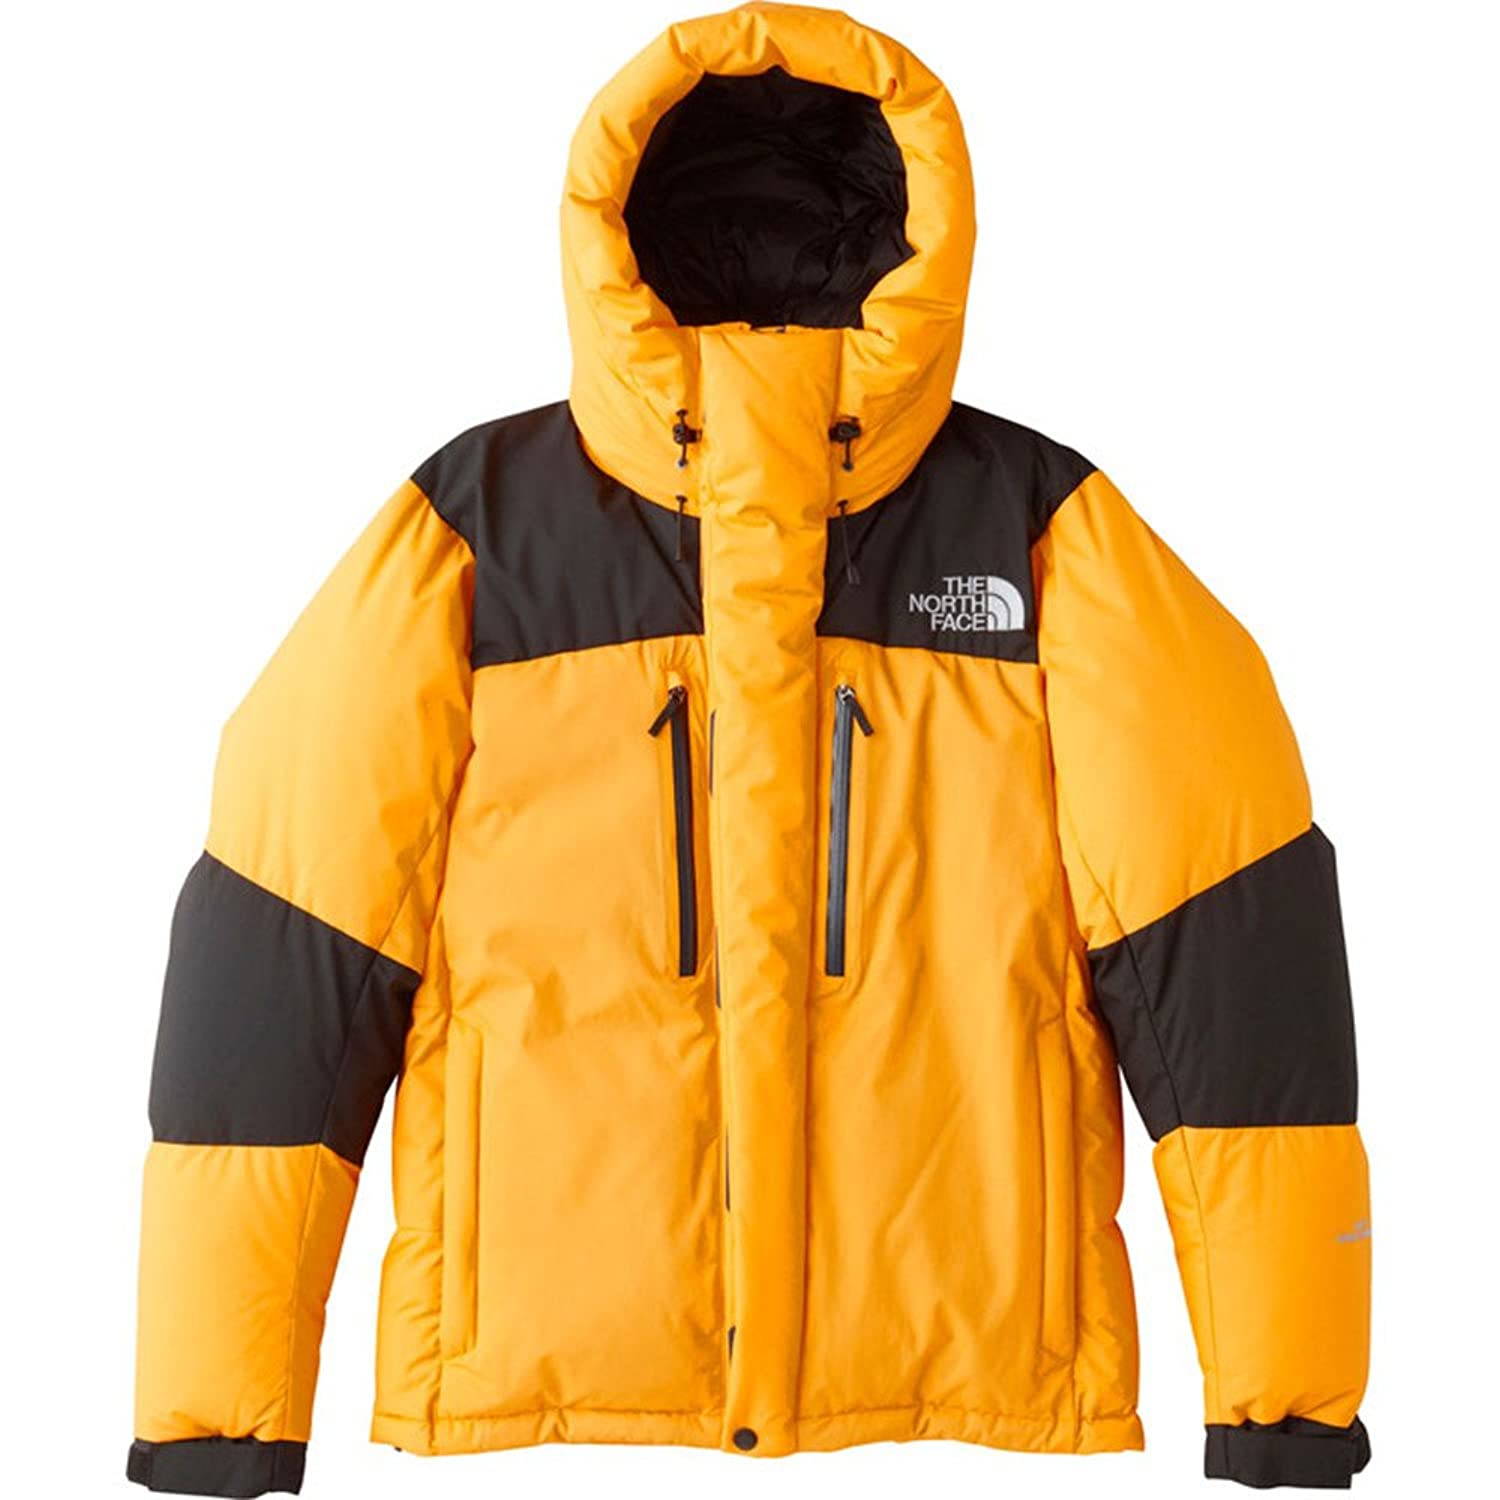 THE NORTH FACE バルトロライトジャケット 画像1